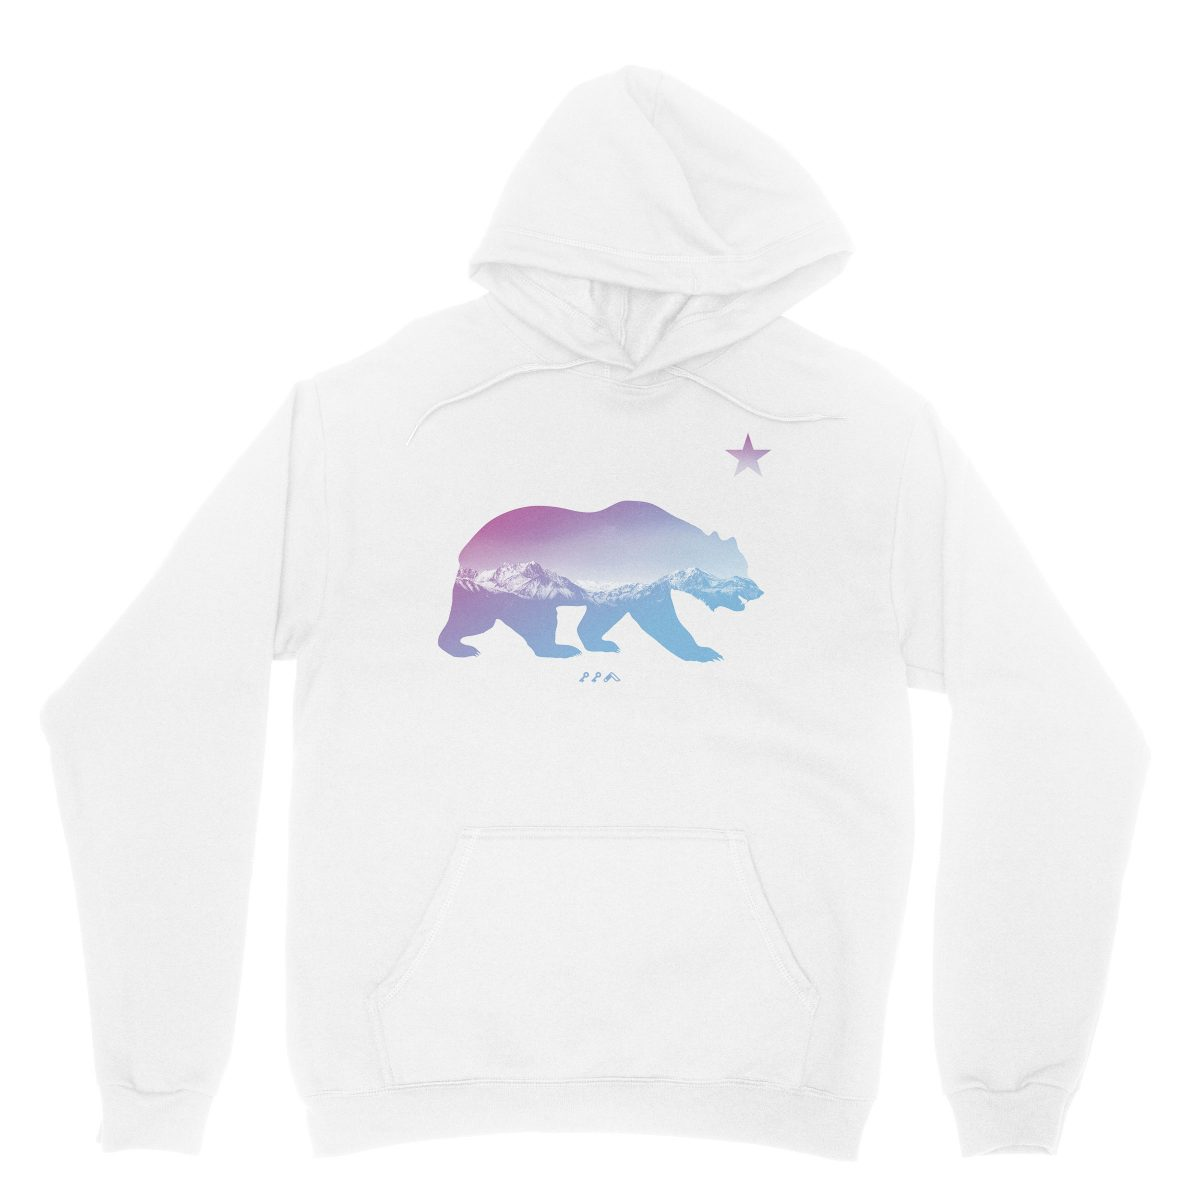 """BARE MOUNTAINS"" california bear hoodies in white by kikicutt"